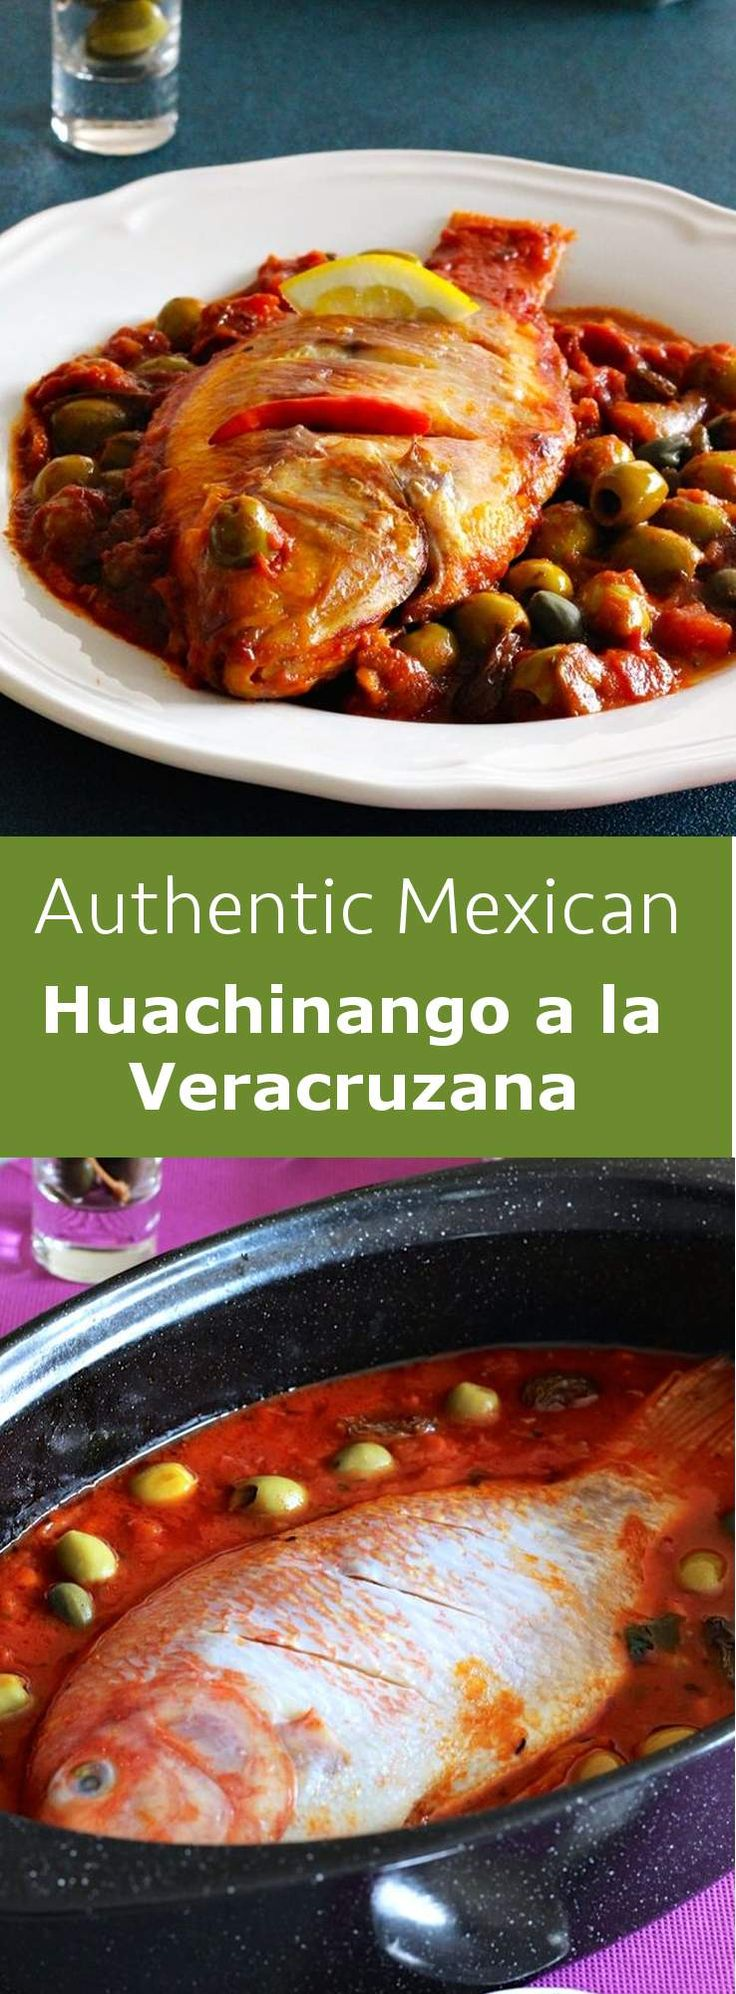 Huachinango a la Veracruzana is a traditional Mexican main course prepared with red snapper cooked in a spicy tomato sauce. #fish #196flavos